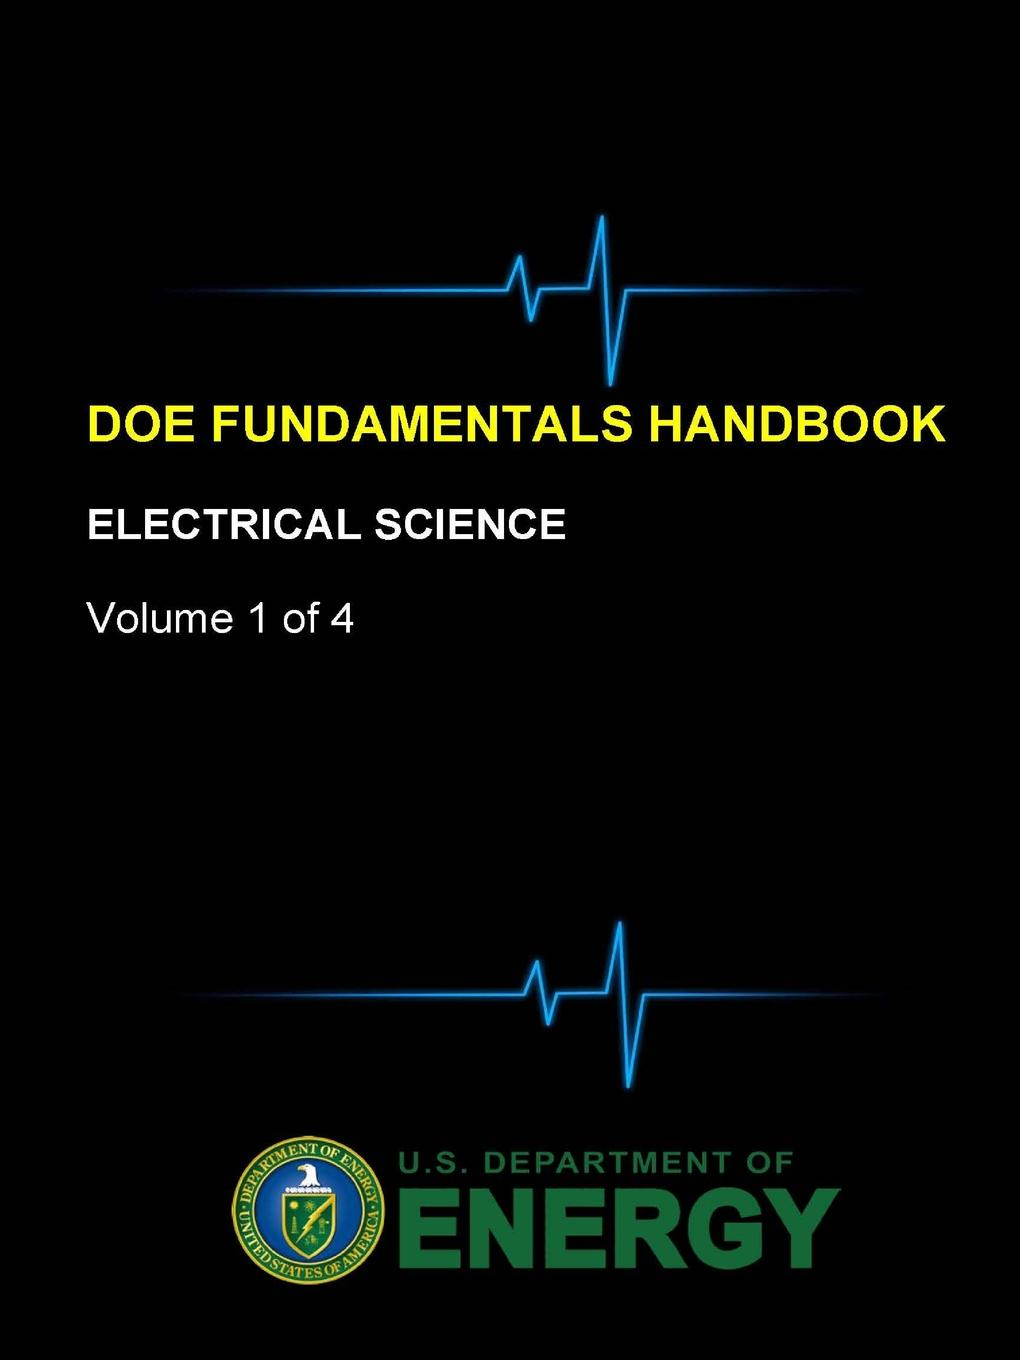 U.S. Department of Energy DOE Fundamentals Handbook - Electrical Science (Volume 1 of 4) arnulf oppelt imaging systems for medical diagnostics fundamentals technical solutions and applications for systems applying ionizing radiation nuclear magnetic resonance and ultrasound